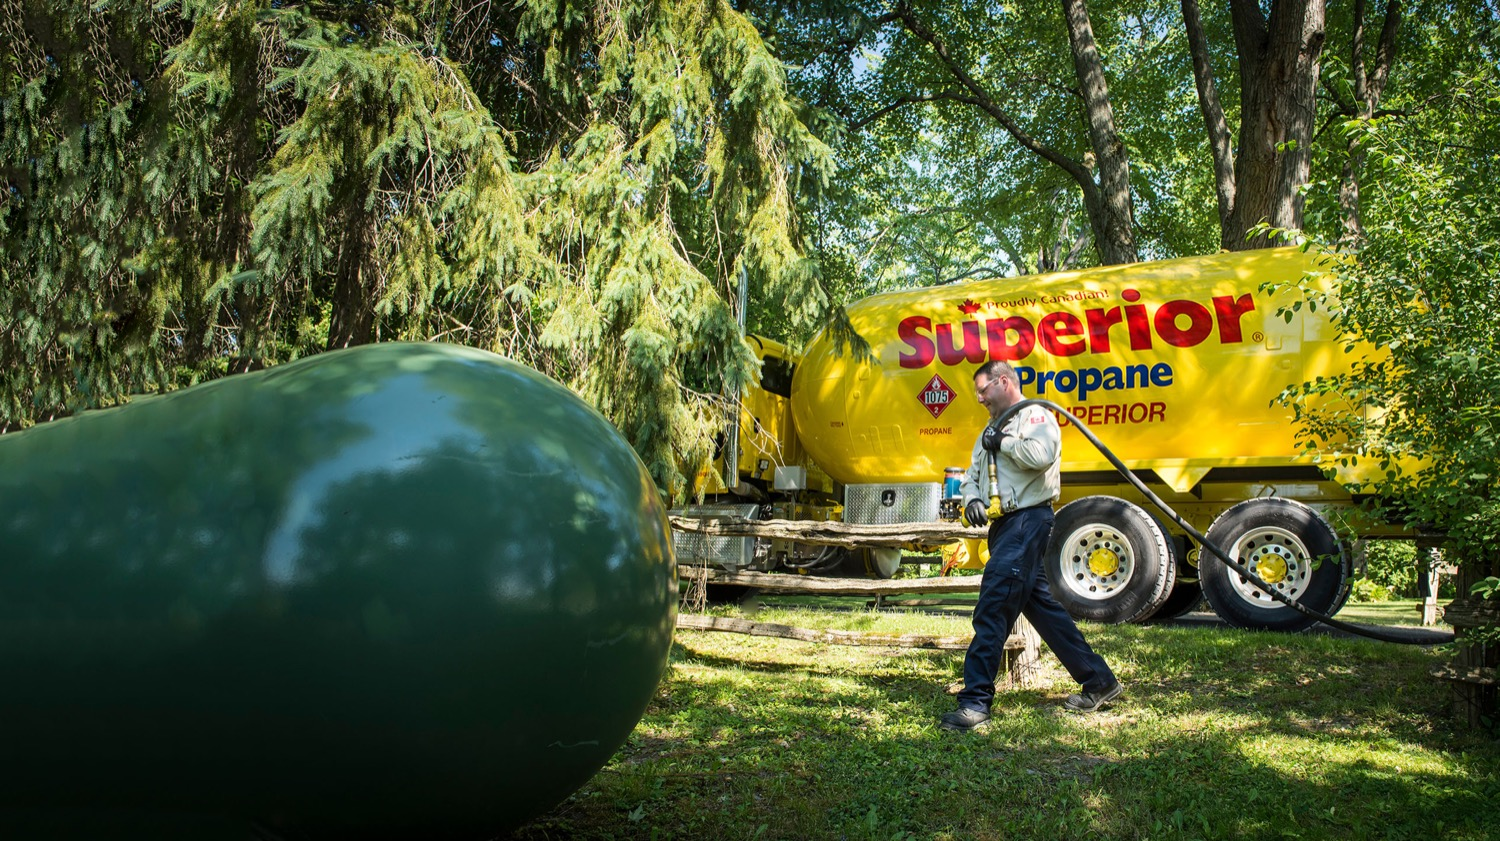 Superior Propane employee preparing to refill a green propane tank in a forested area.